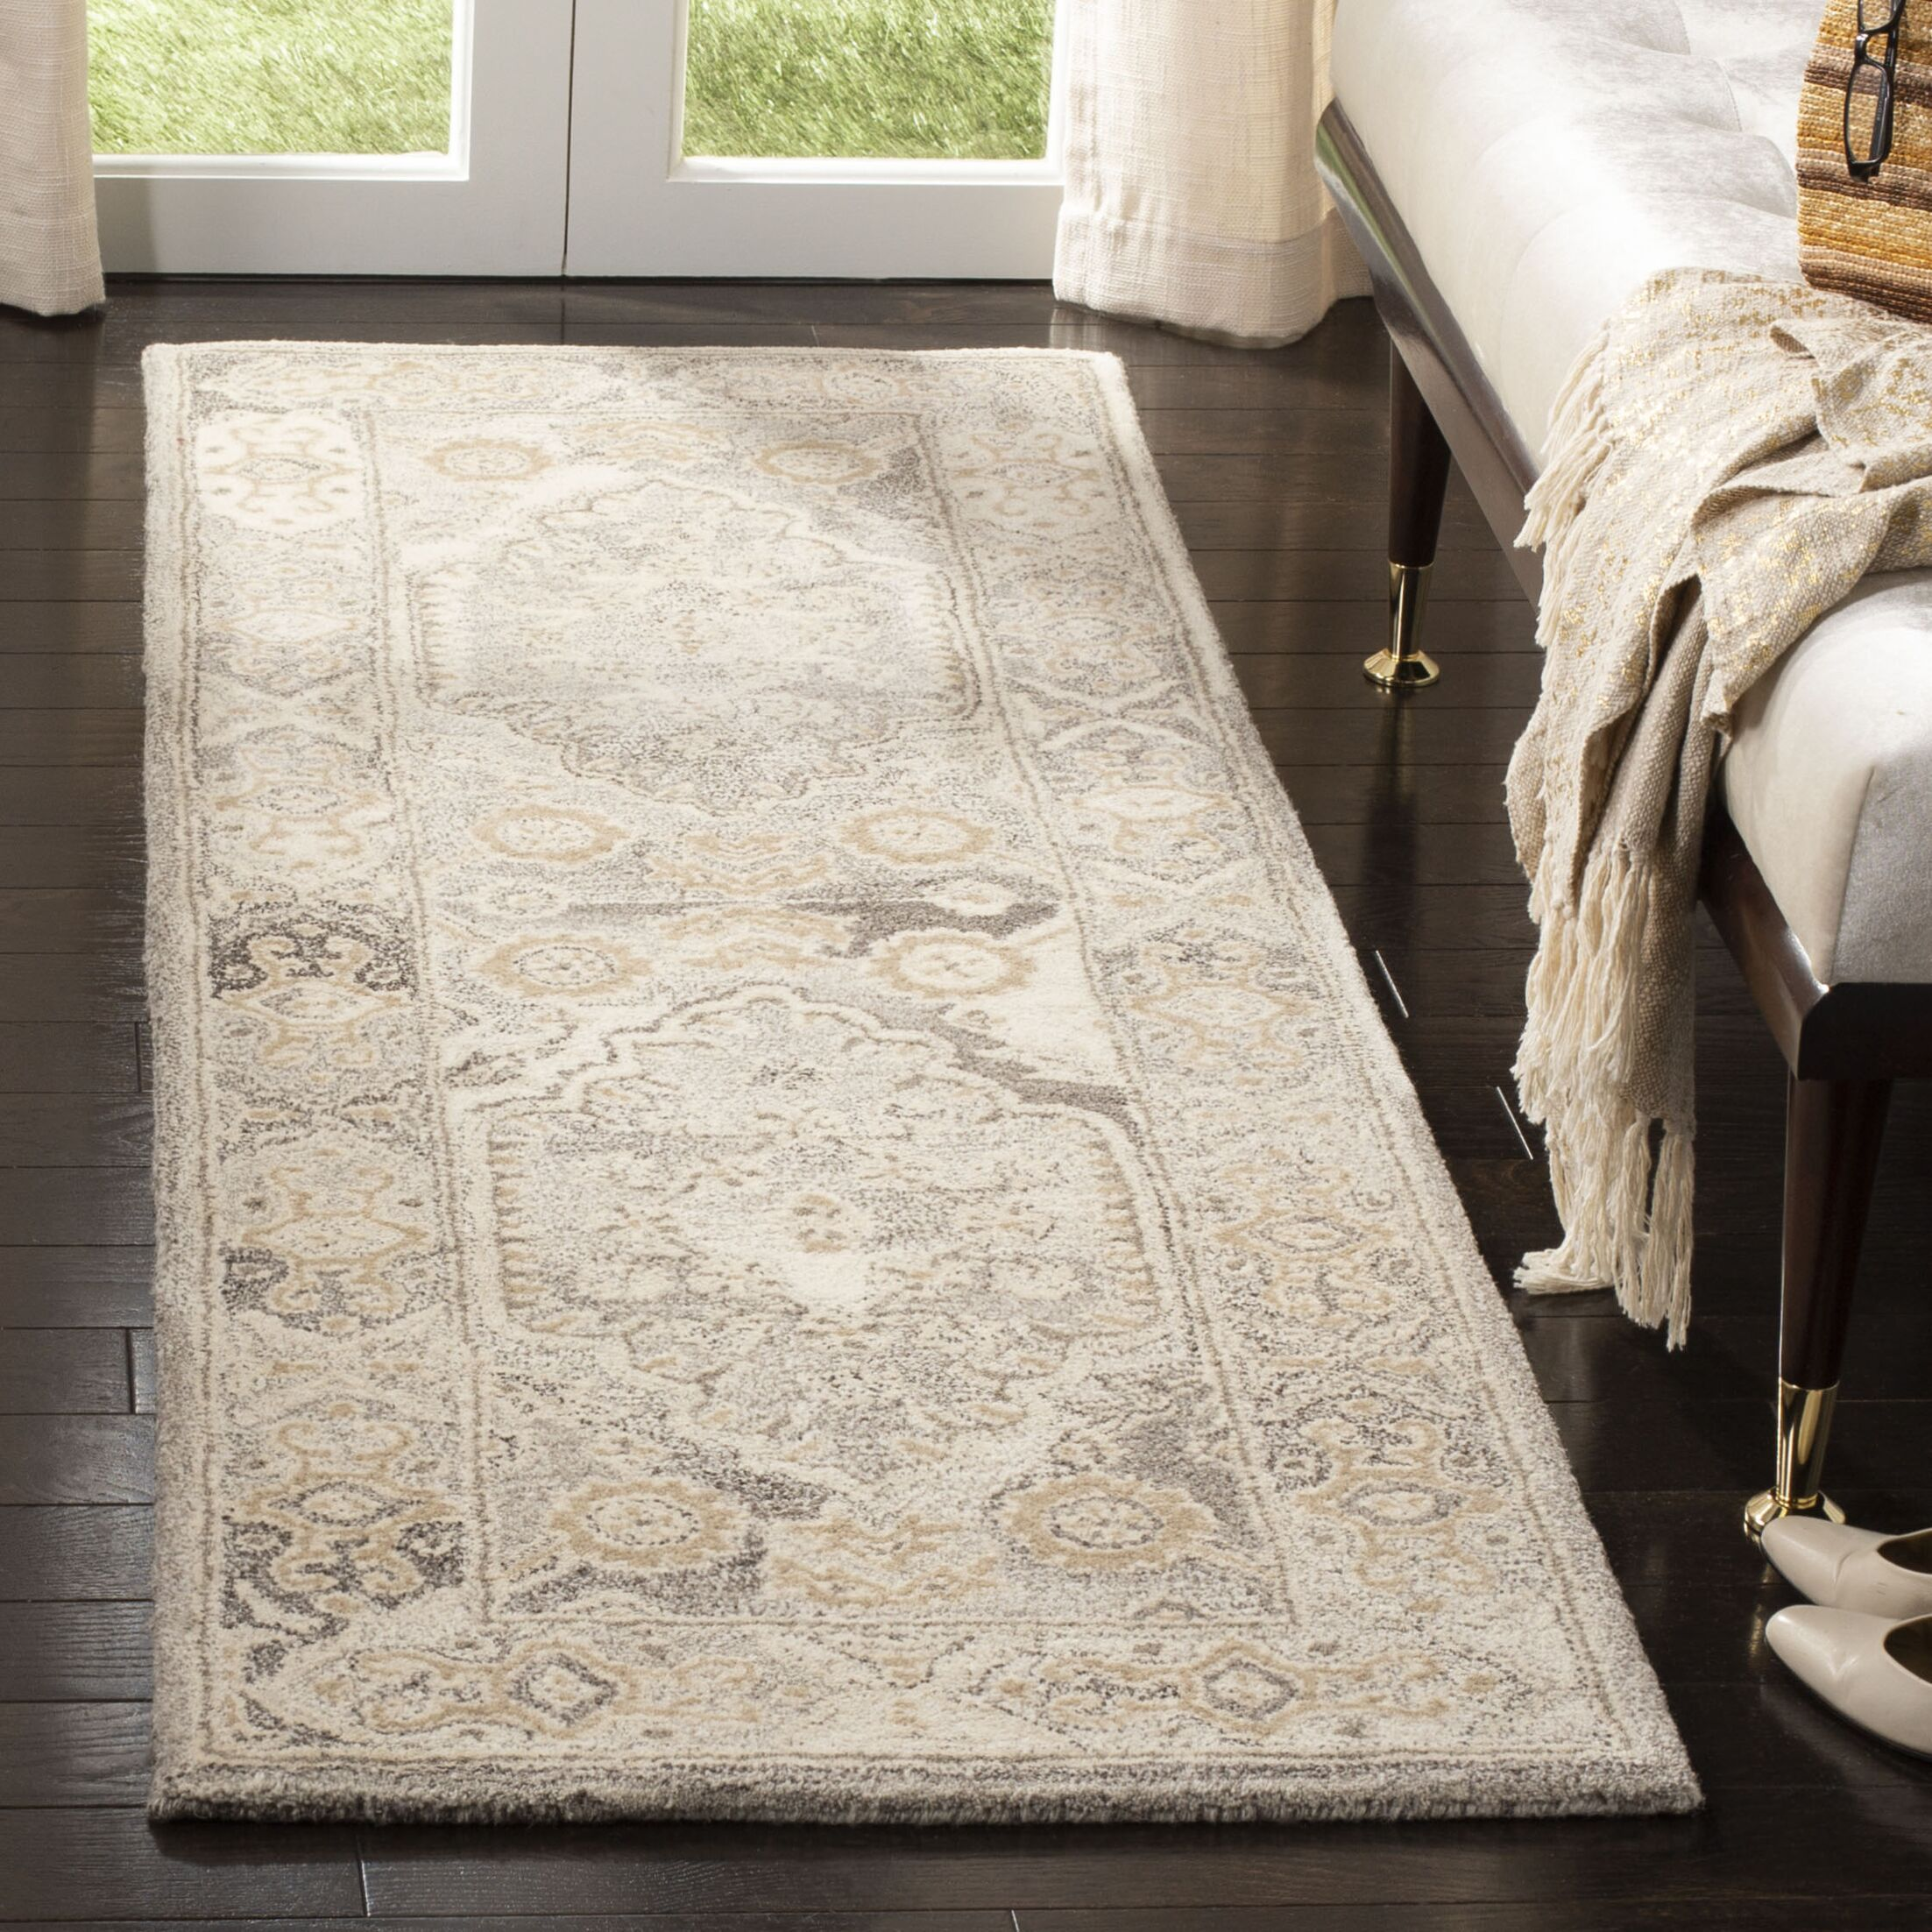 Amory Hand-Tufted Wool Light Gray Area Rug Rug Size: Runner 2'3